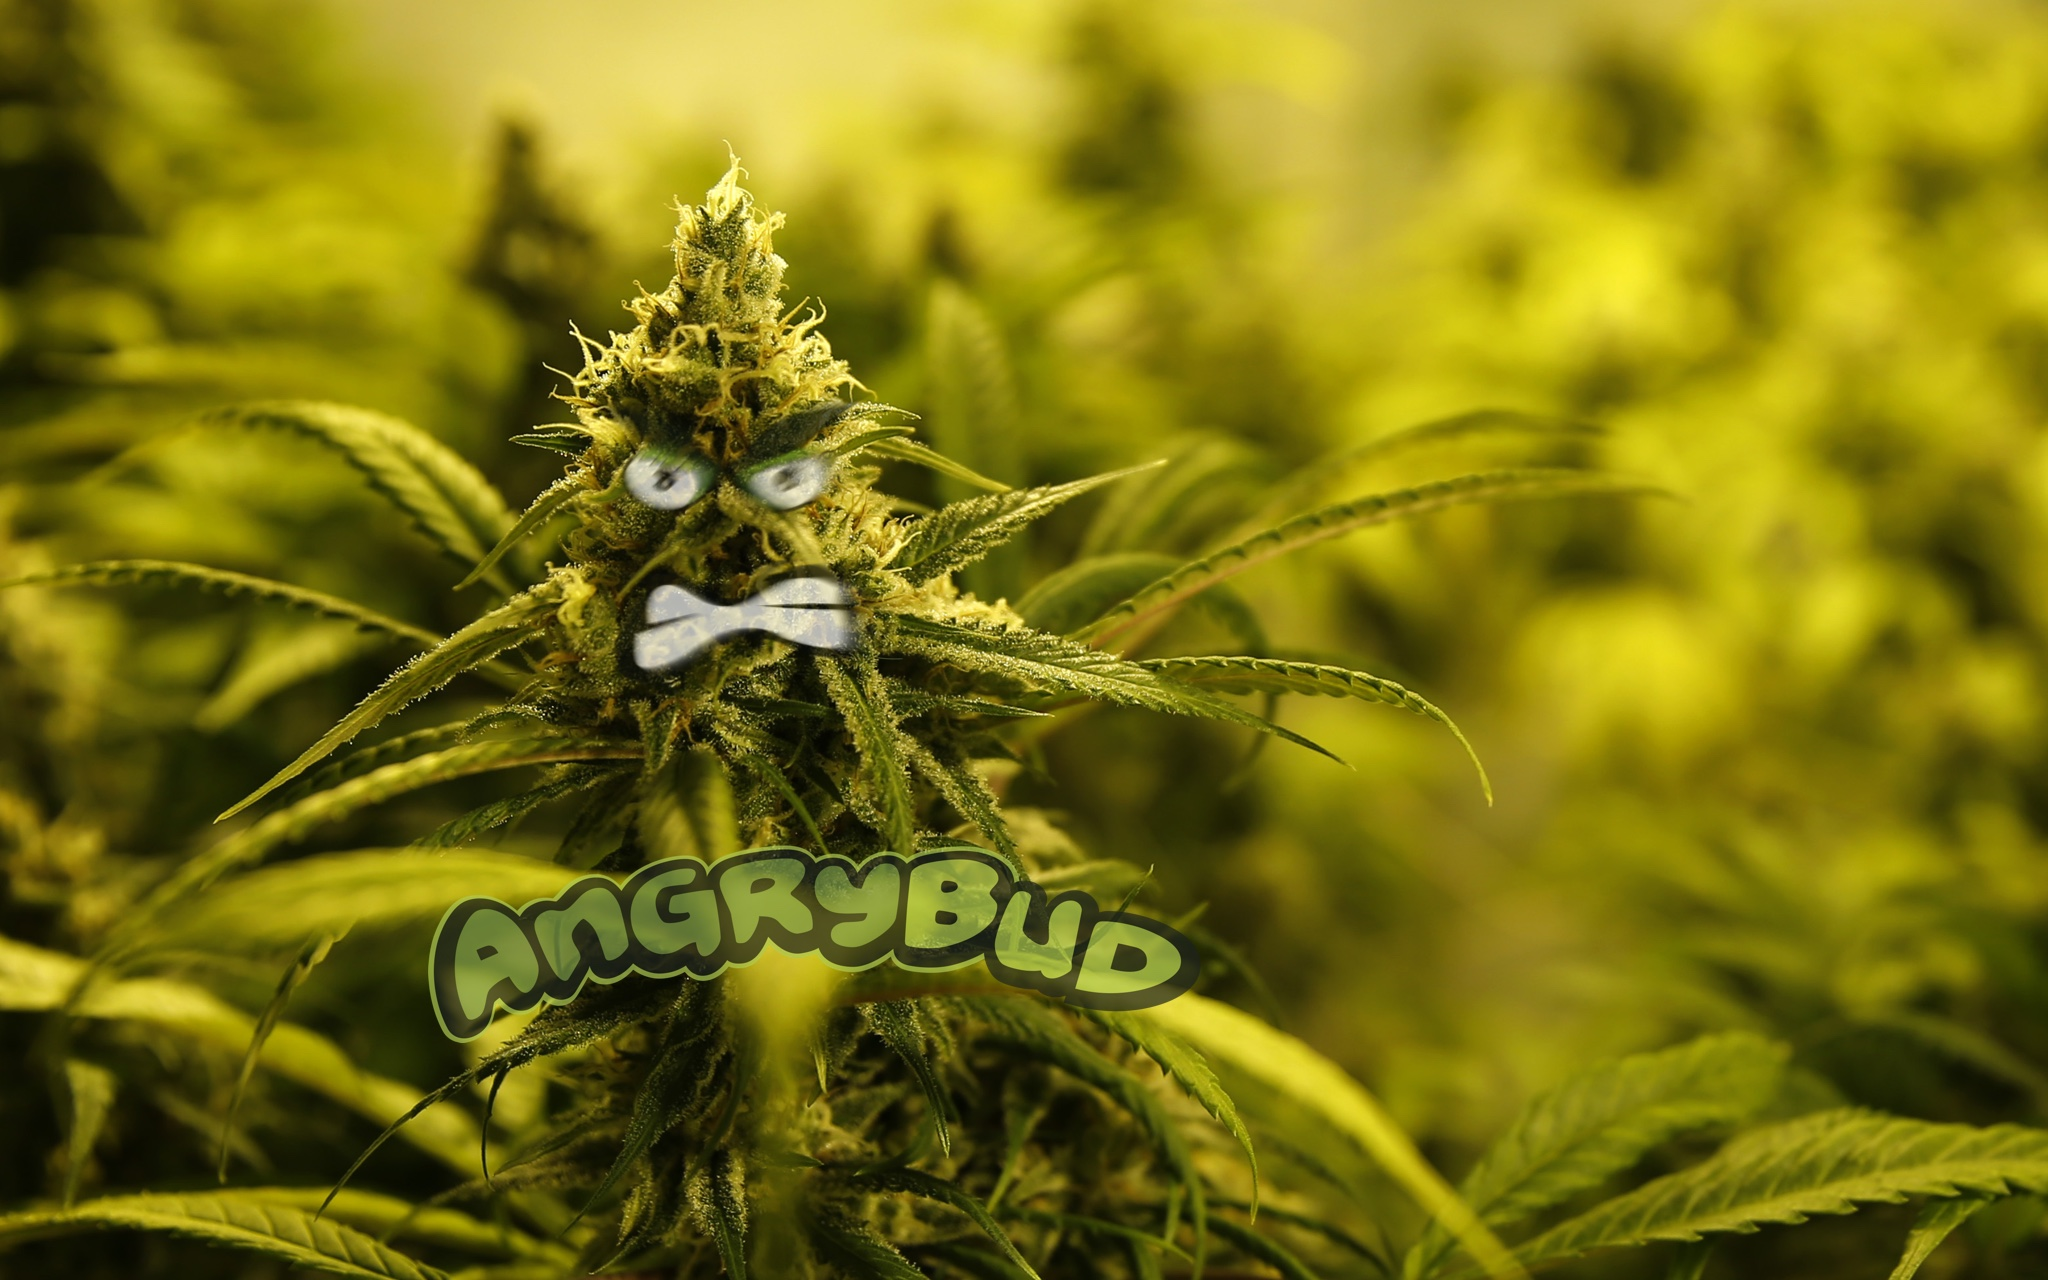 Mr. Angry Bud Itself in Person (Cannabis Wallpaper)